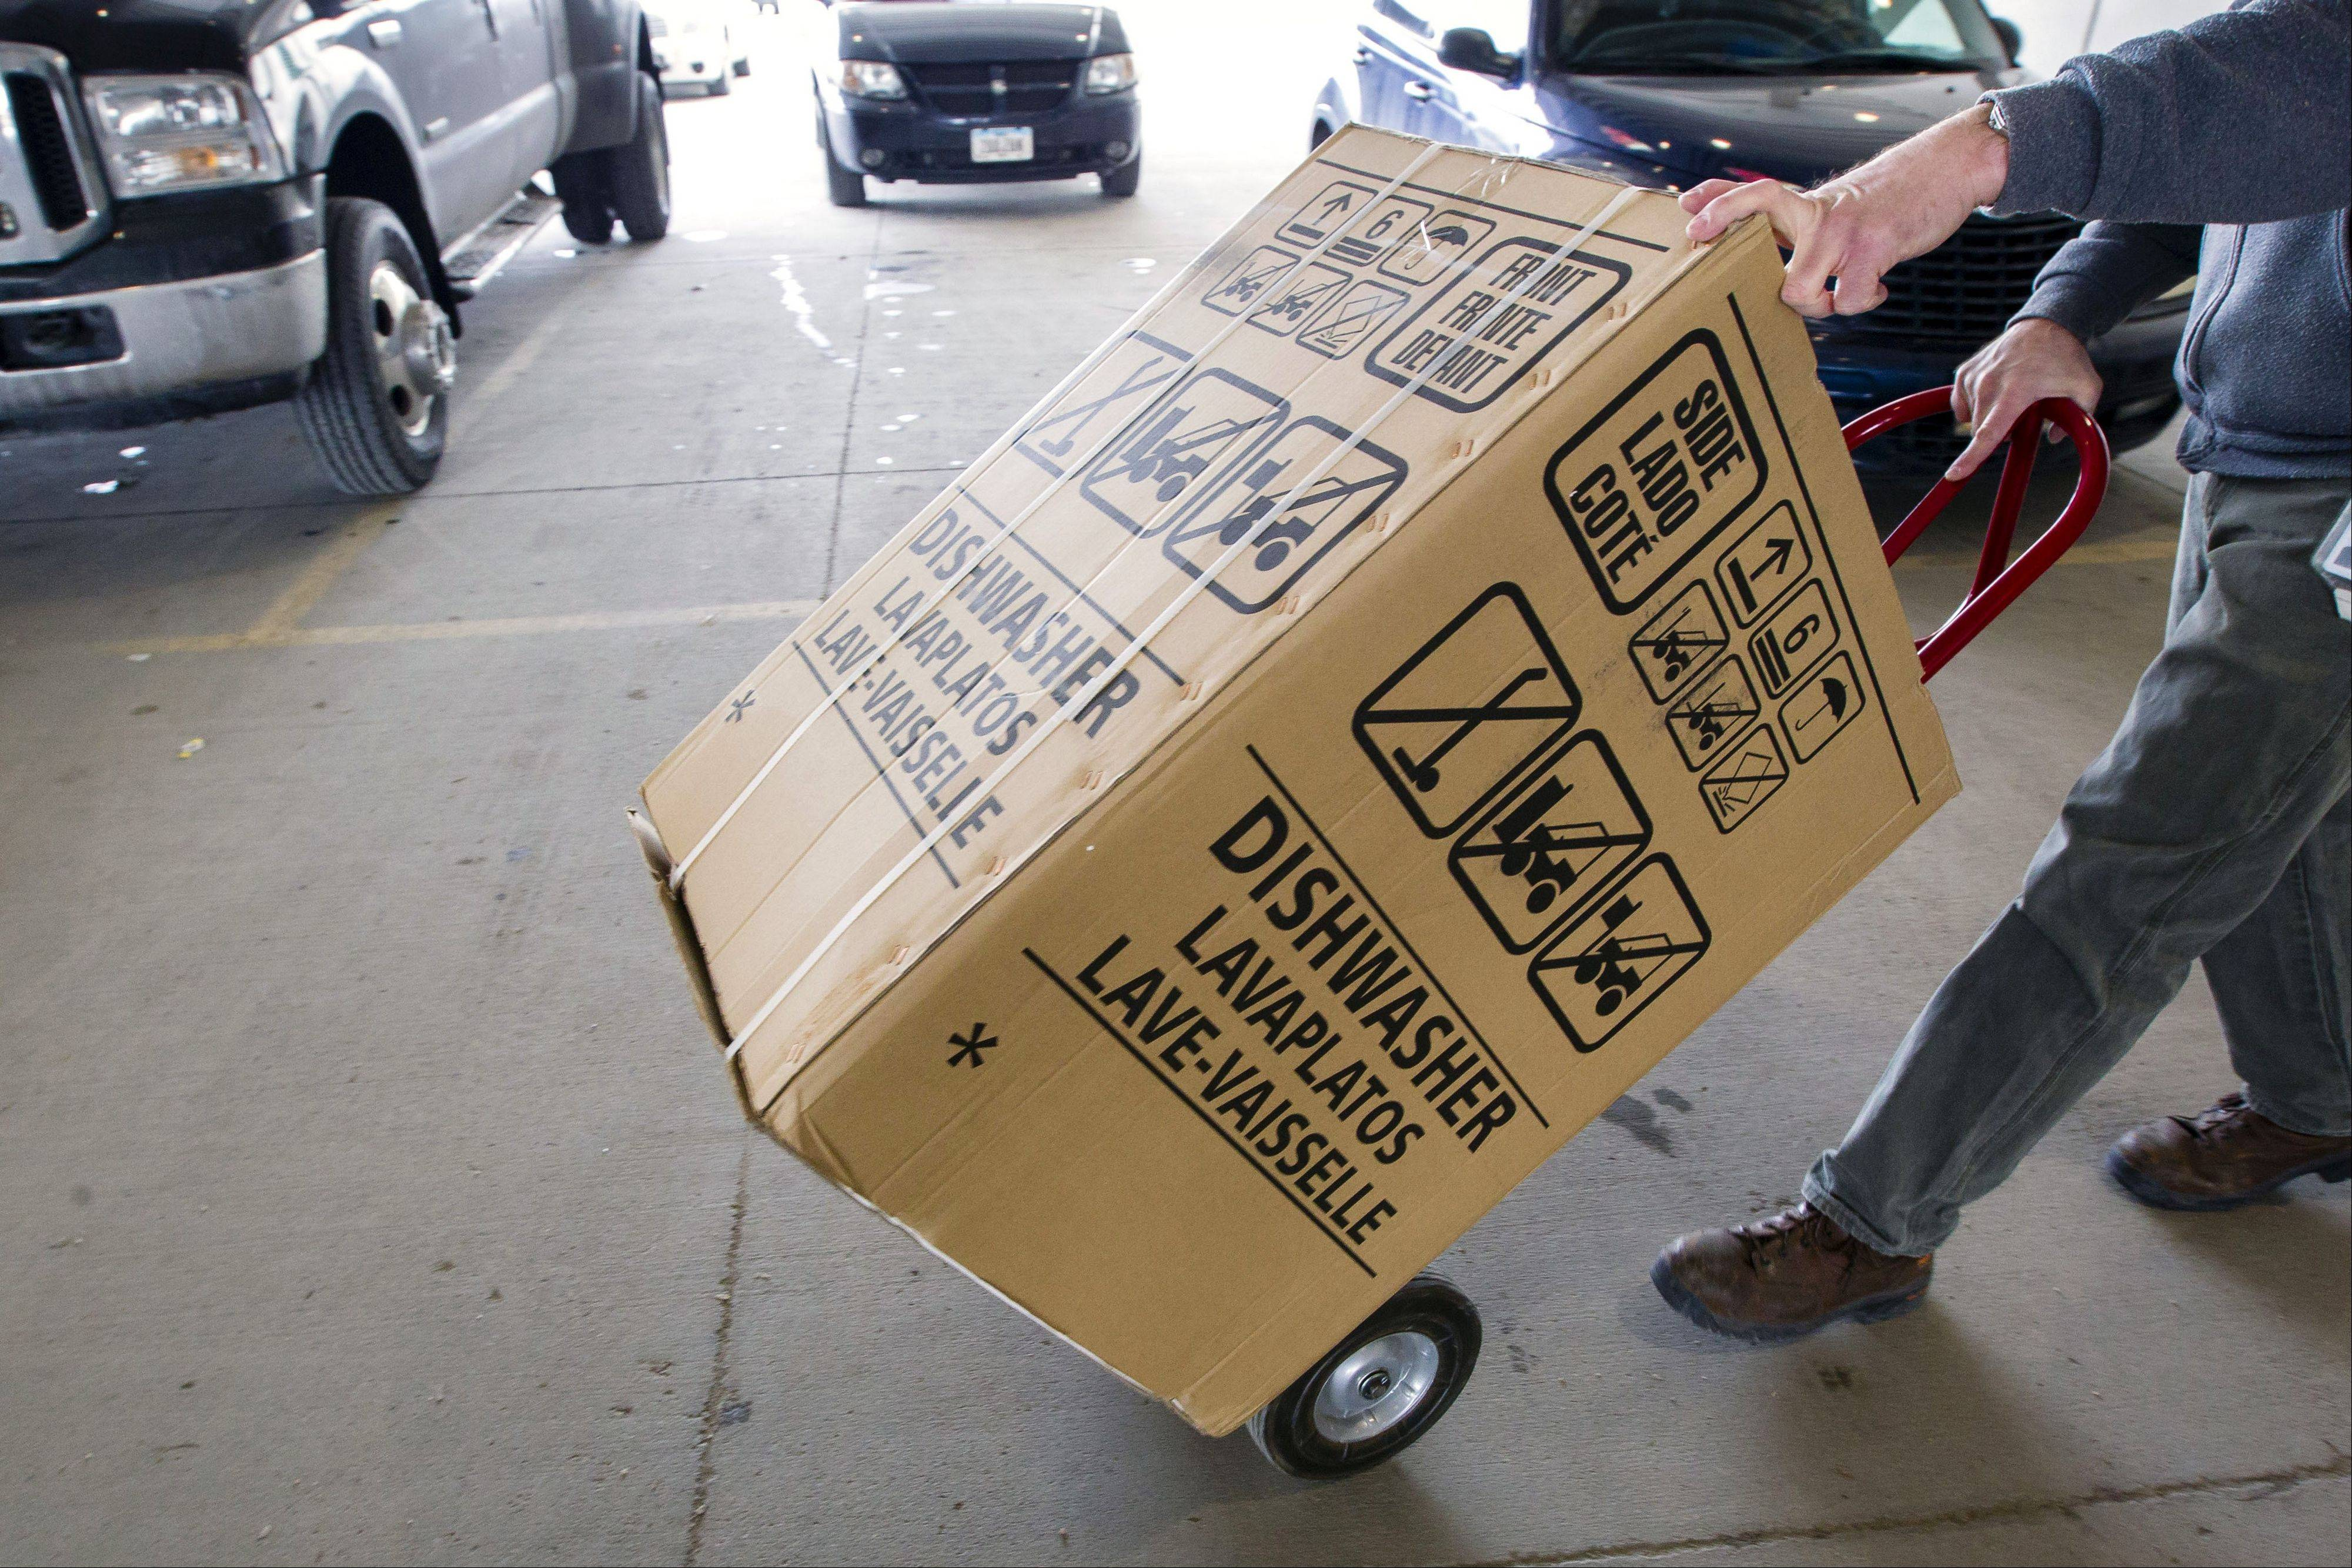 An employees carts a dishwasher to a customer�s vehicle at the loading docks of Nebraska Furniture Mart in Omaha, A surge in commercial aircraft demand pushed orders for U.S. long-lasting manufactured goods up sharply in February.